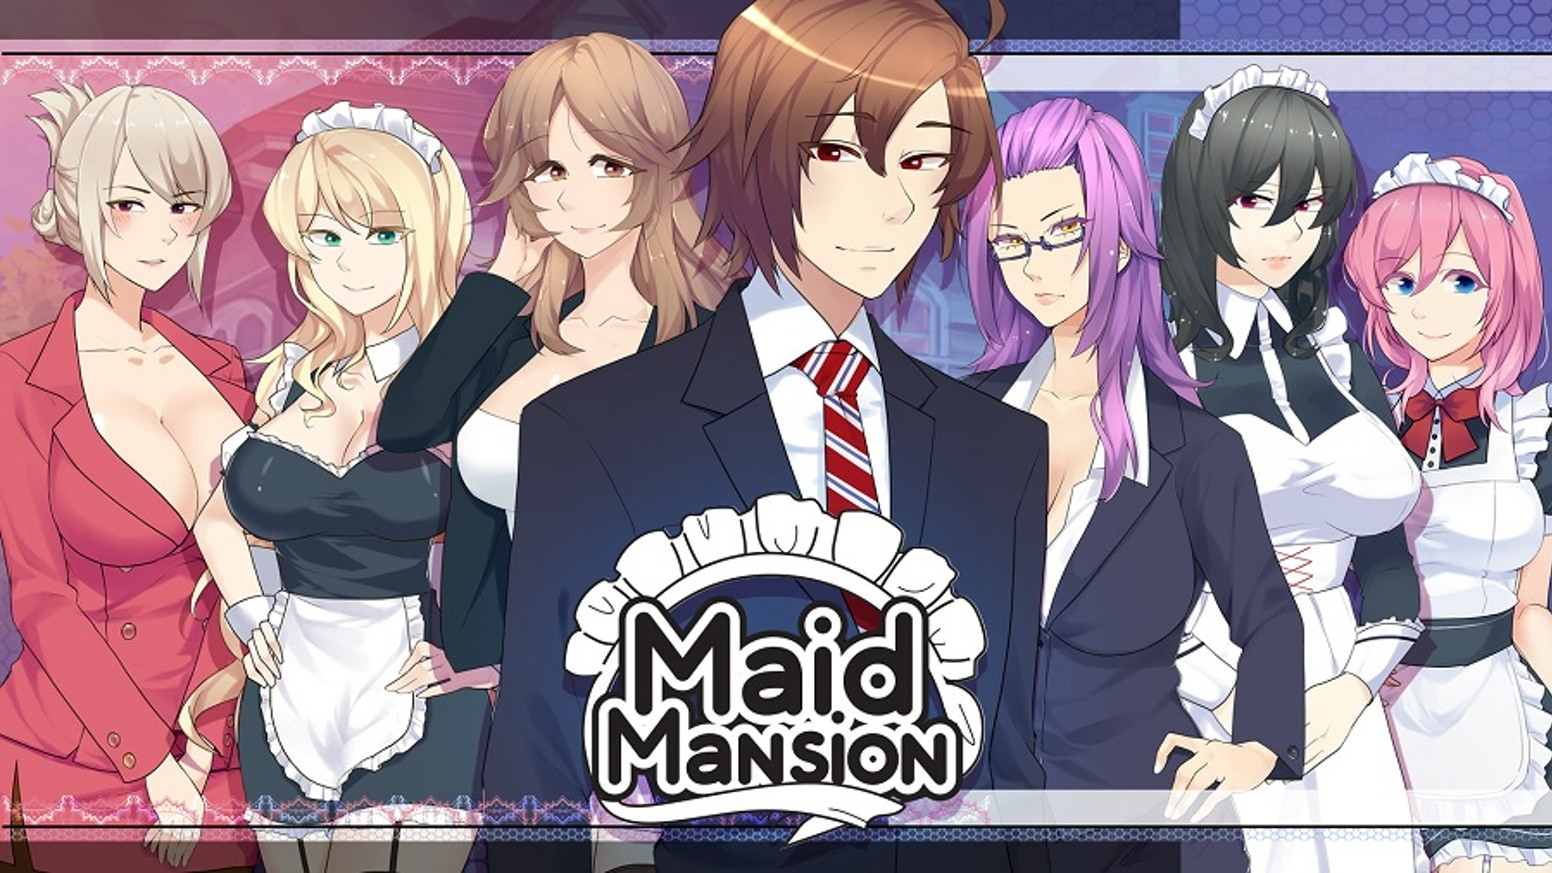 Maid Mansion Visual Novel By Crazy Cactus Entertainment Llc